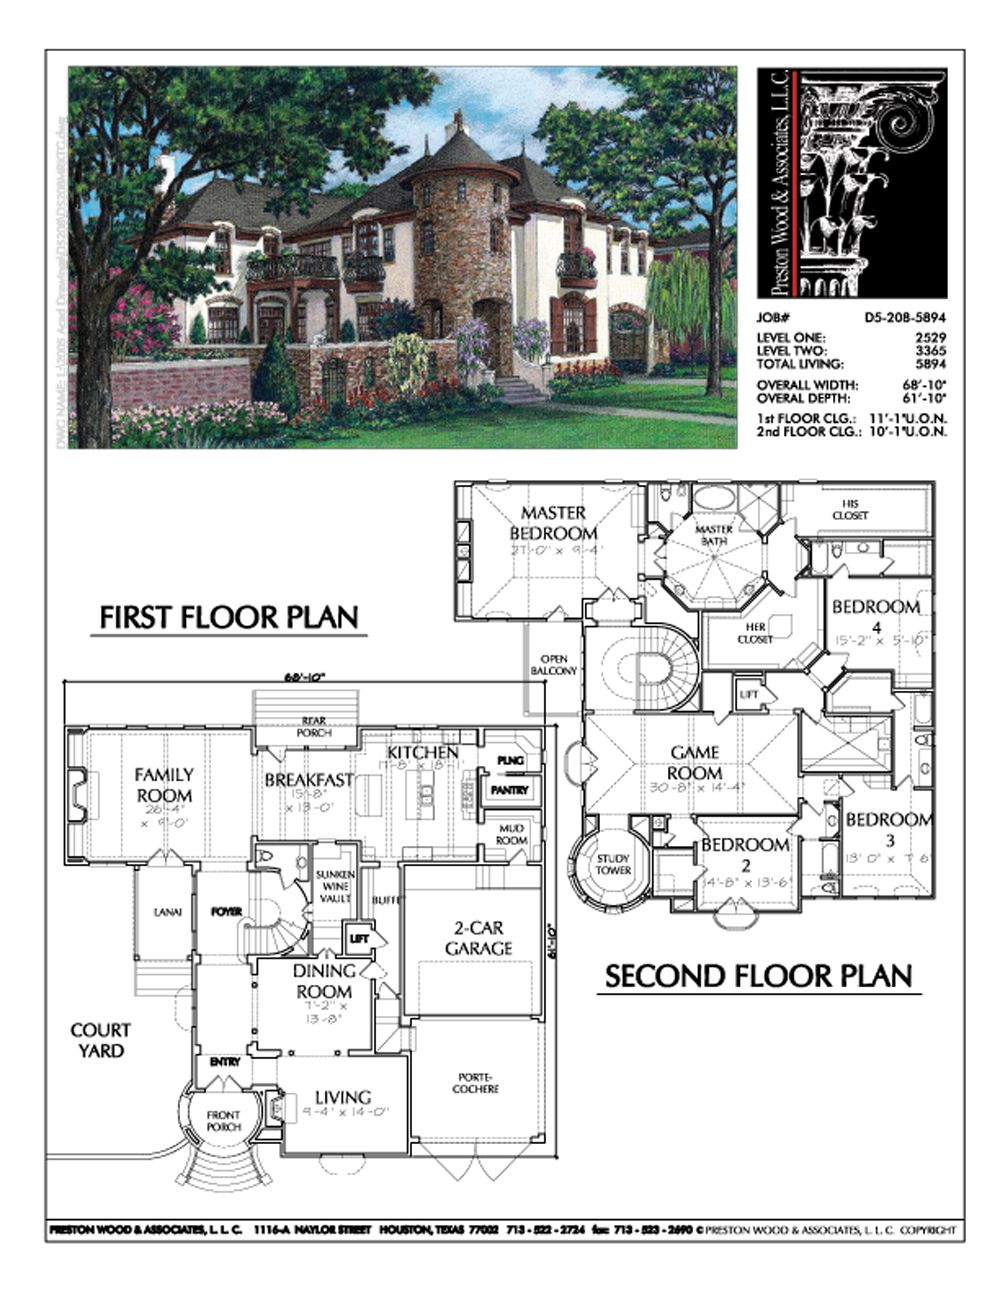 Urban Home Plan Ad5208 Four Bedroom House Plans House Plans Dream House Plans